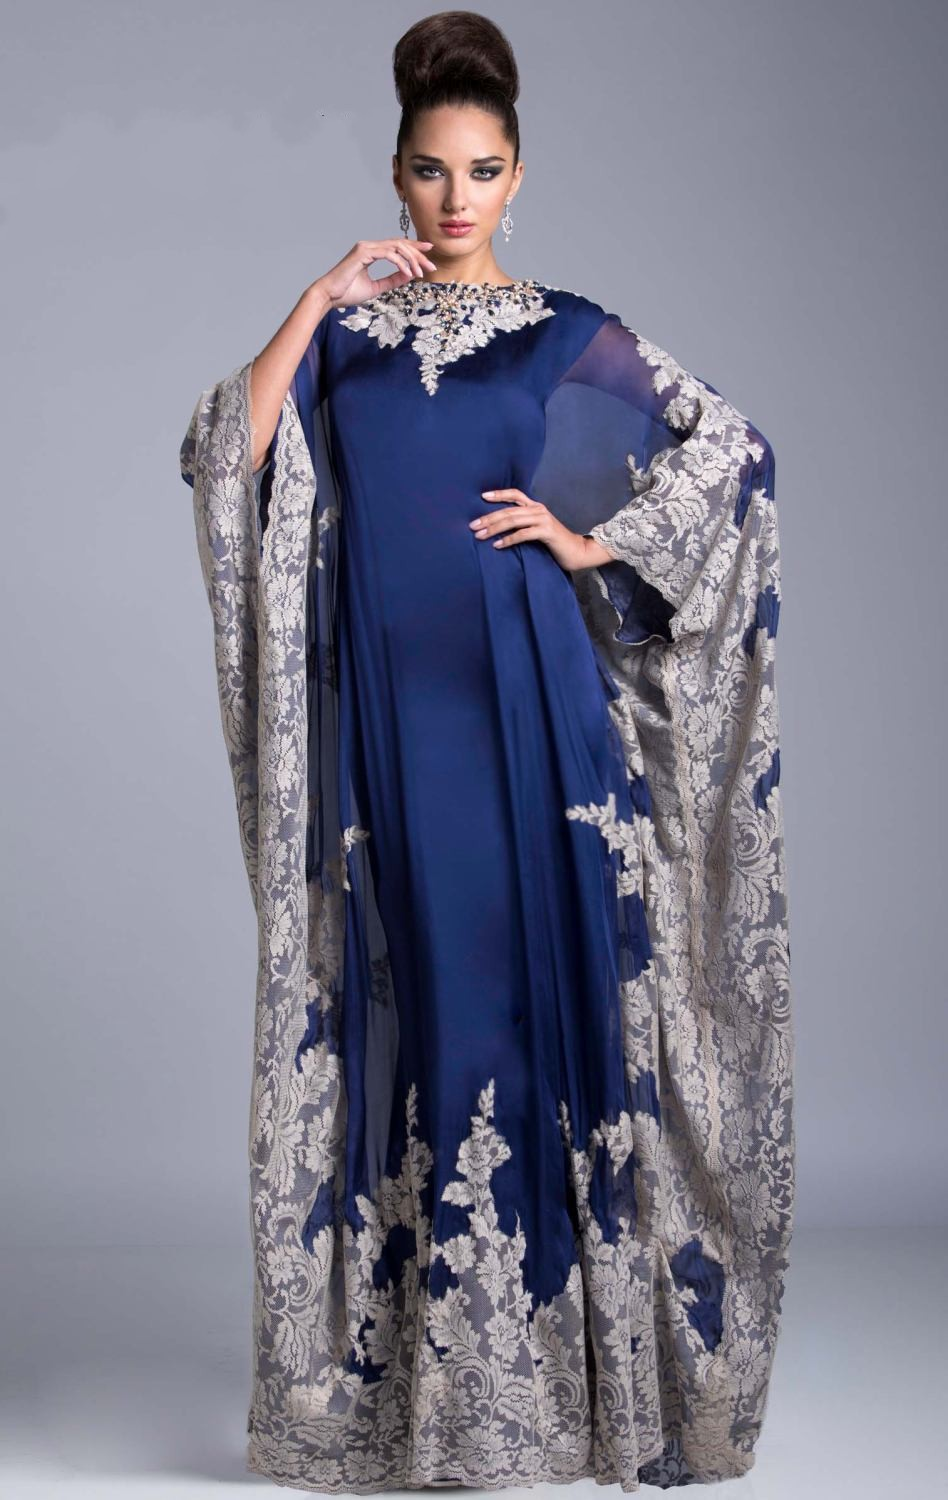 Custom Made Real Samples Arabic Kaftan Royal Blue Evening Prom Gown 2020 Embroidery Dubai Chiffon Mother Of The Bride Dresses